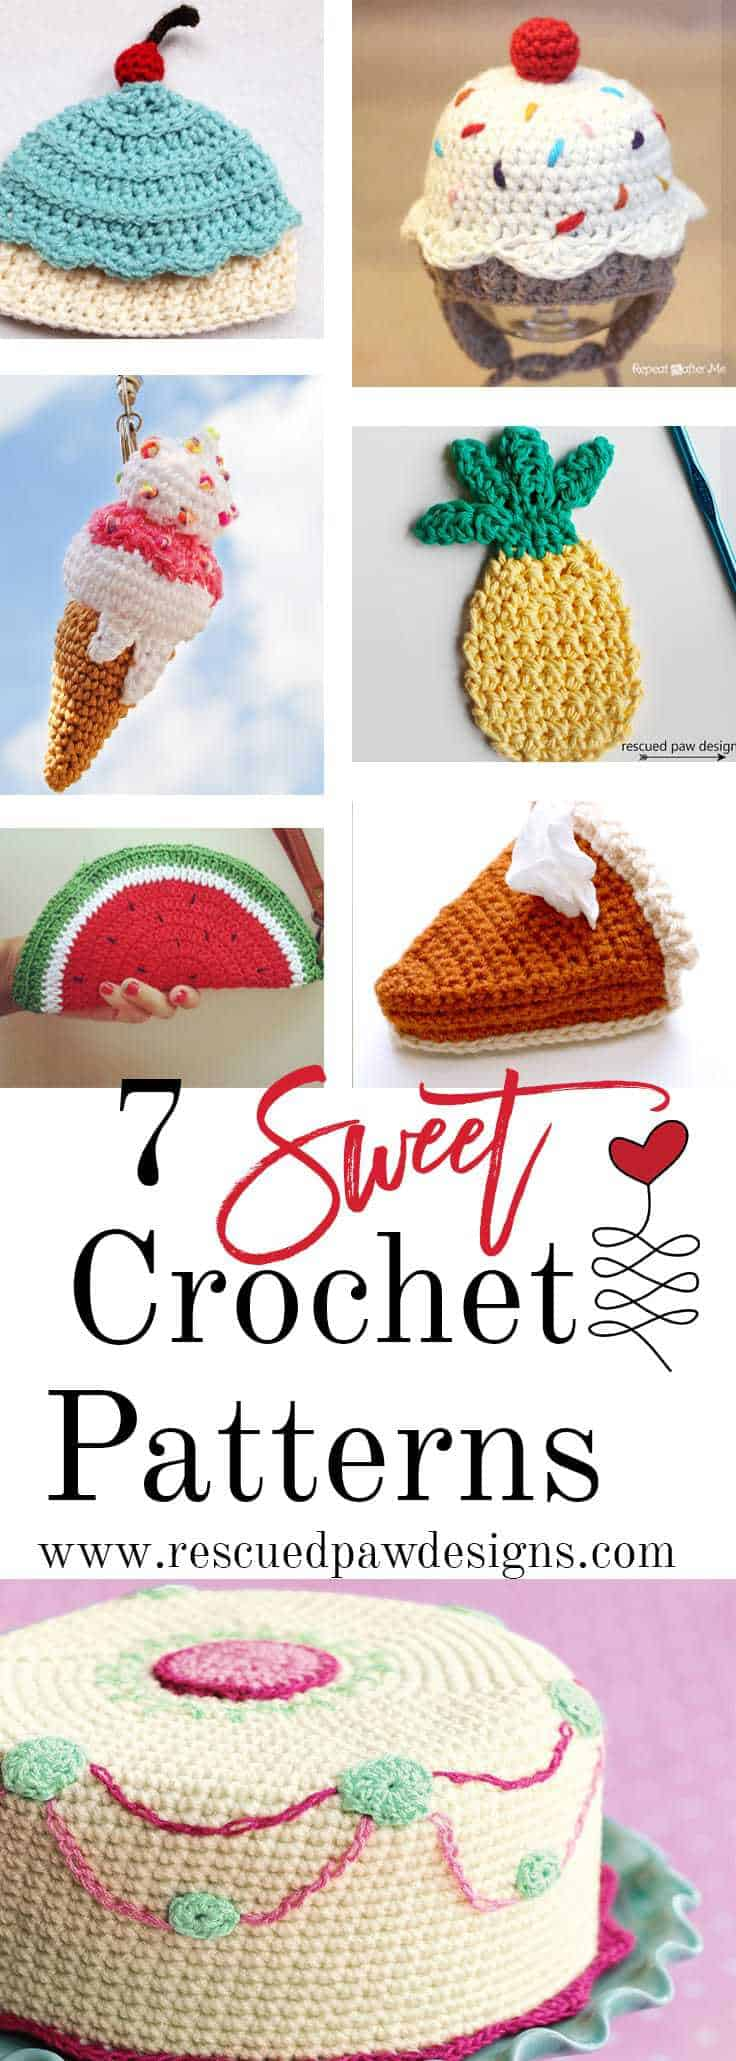 7 Sweet Crochet Patterns - Rescued Paw Designs www.rescuedpawdesigns.com